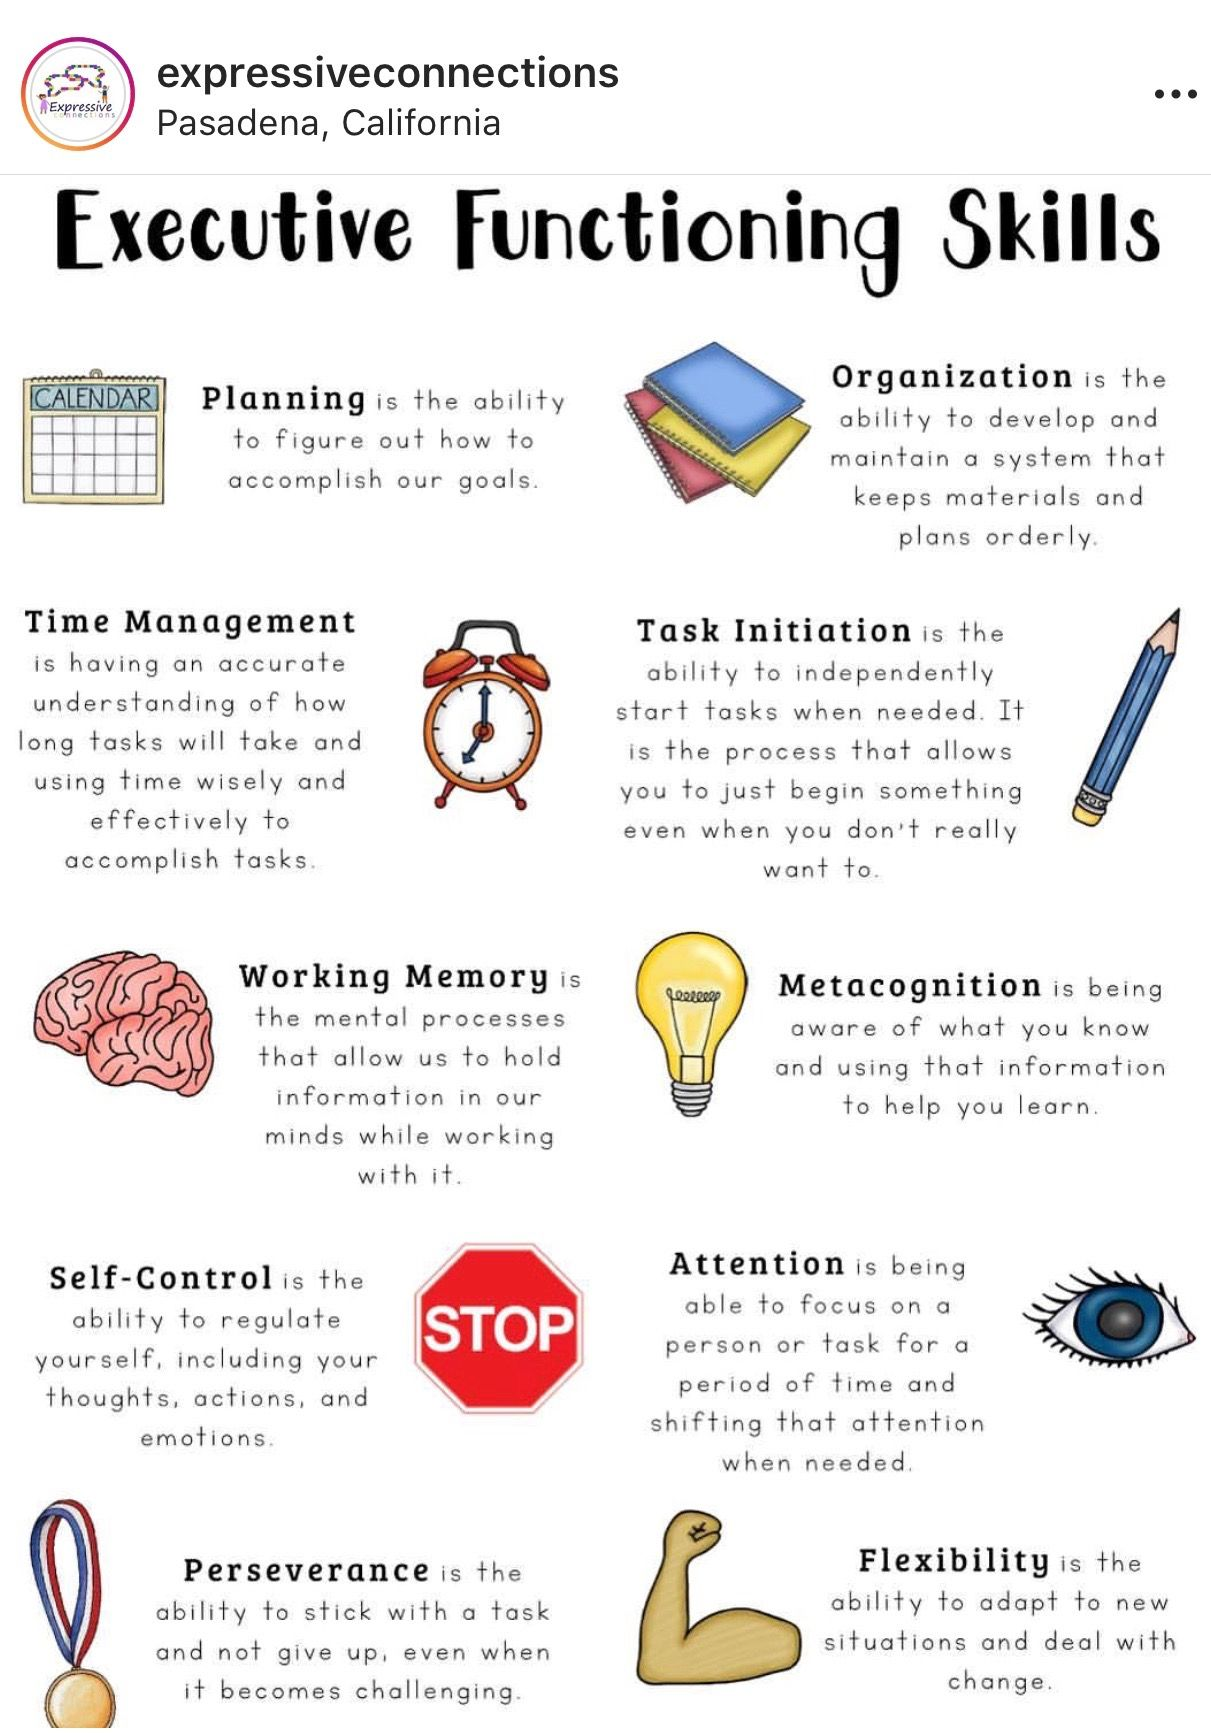 Executive Functioning Skills Image By Sarah Willey On